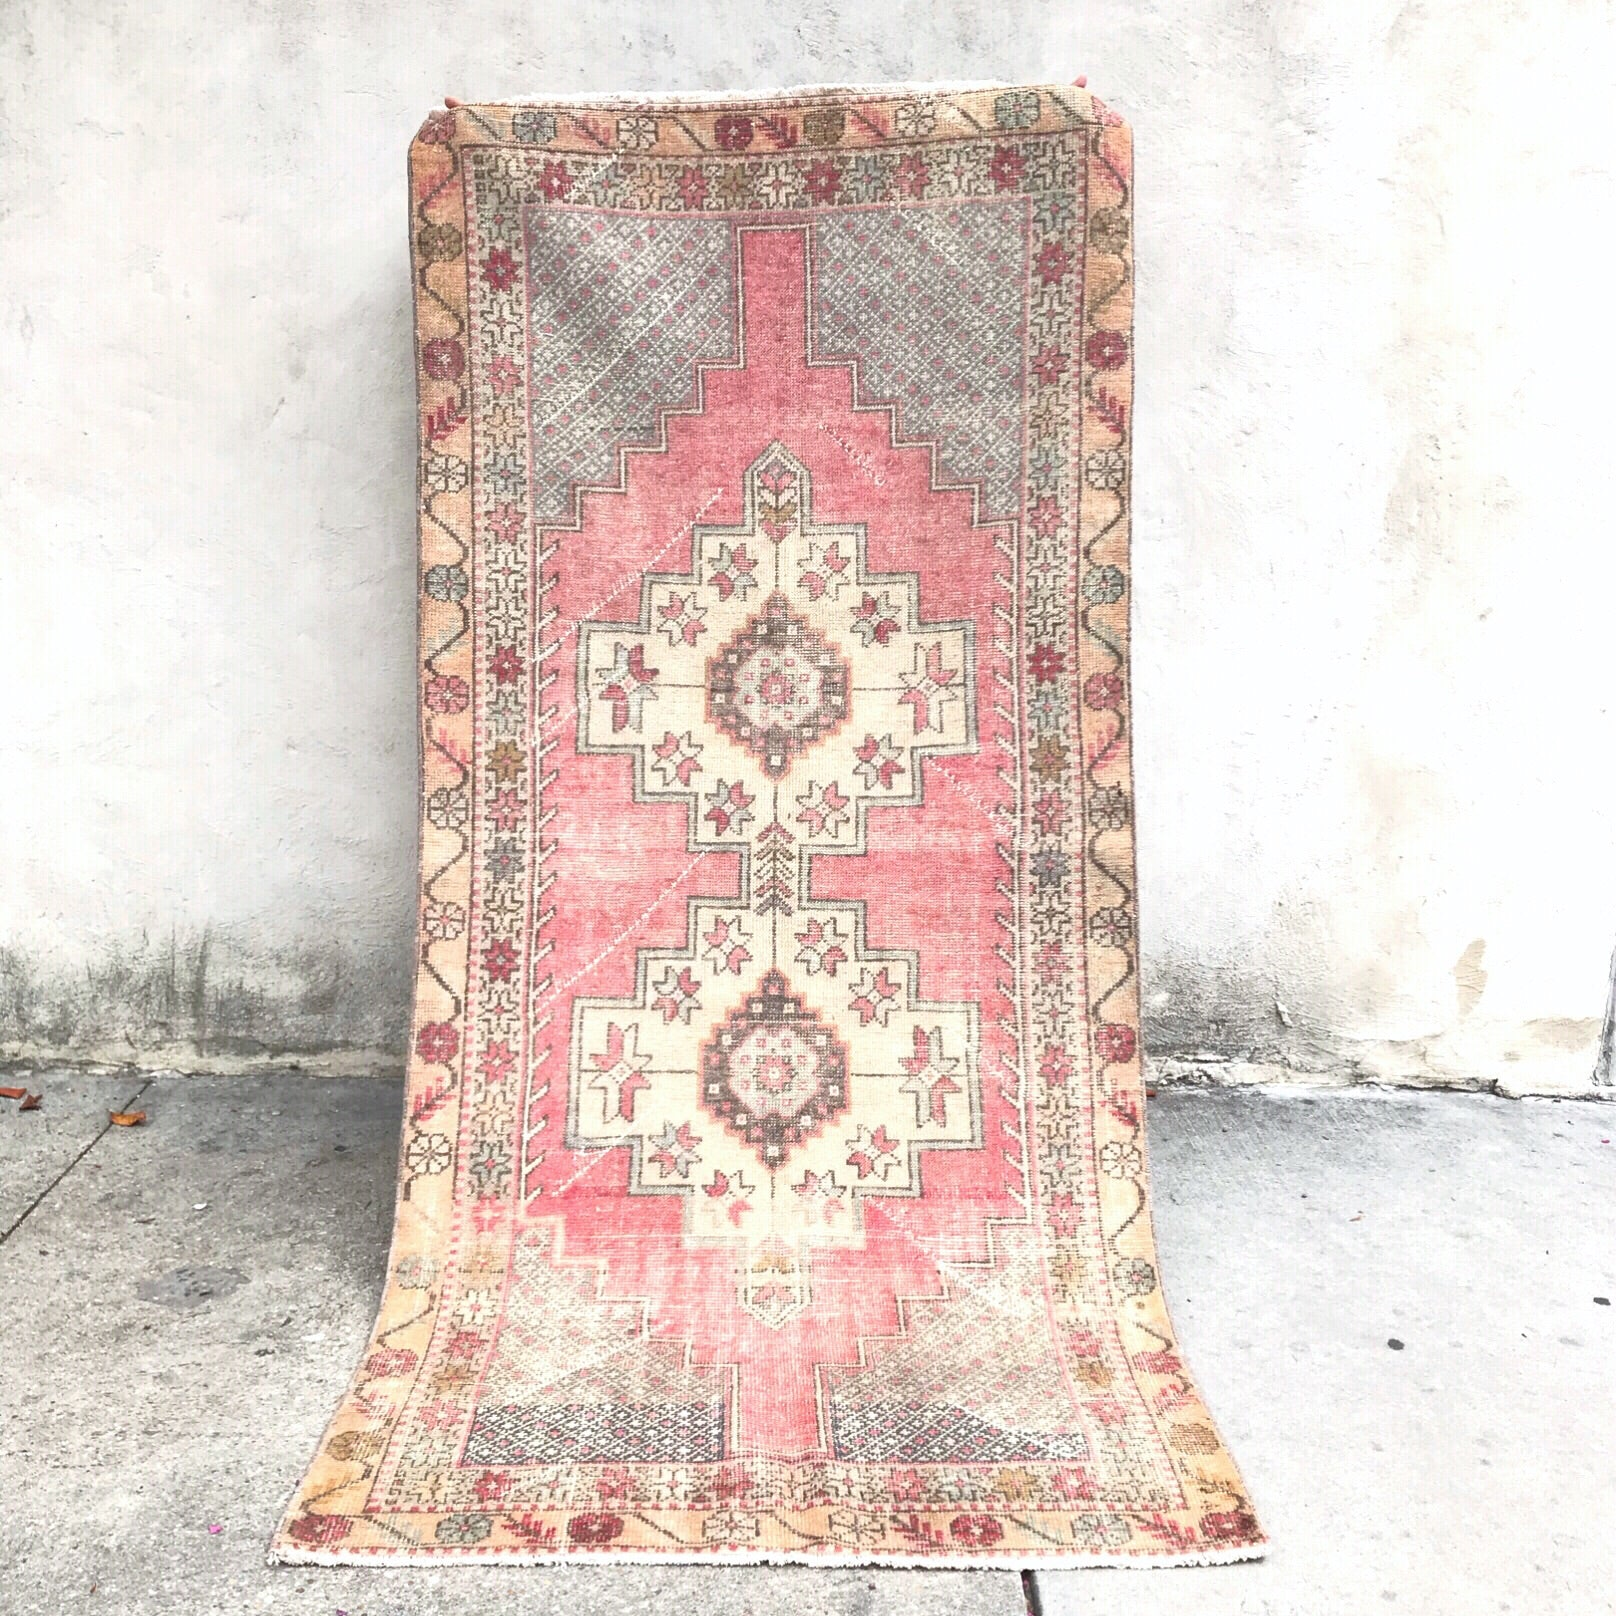 This avanoz vintage Turkish rug has a beautiful warm pink background with gray/blue and off-white accents. 3'6x7'11